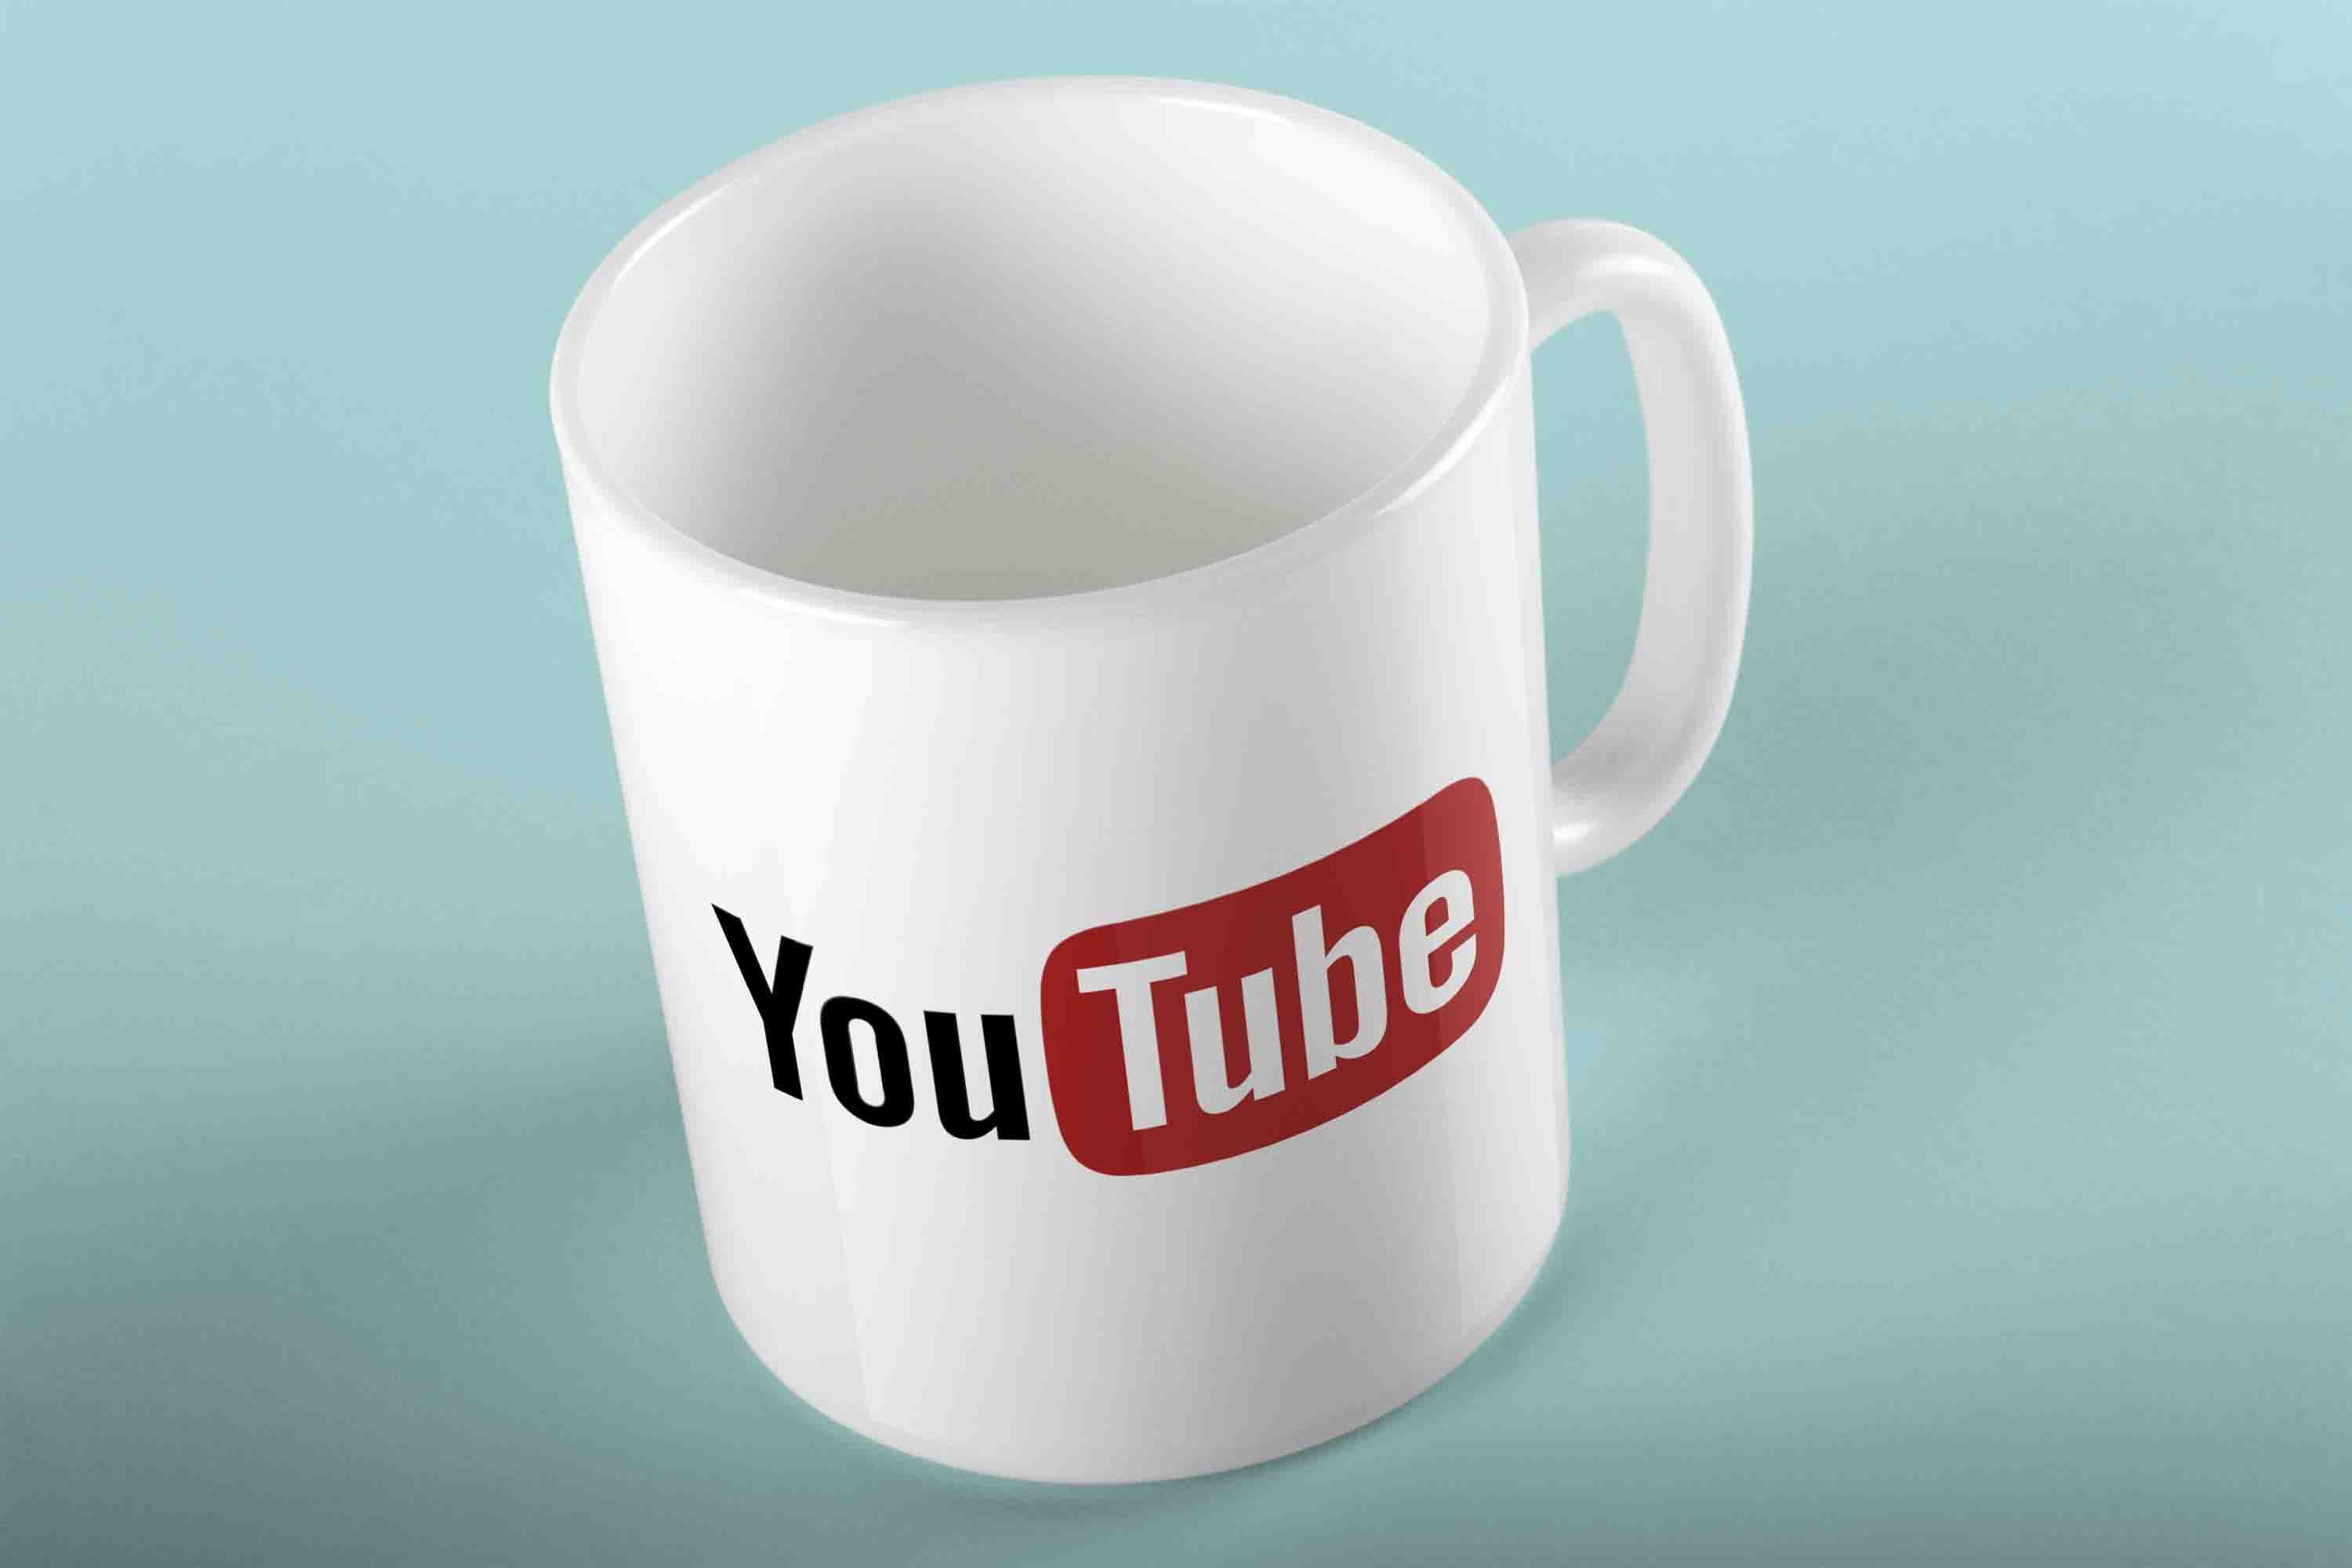 YOUTUBE COFFEE MUG - FOR CREATORS